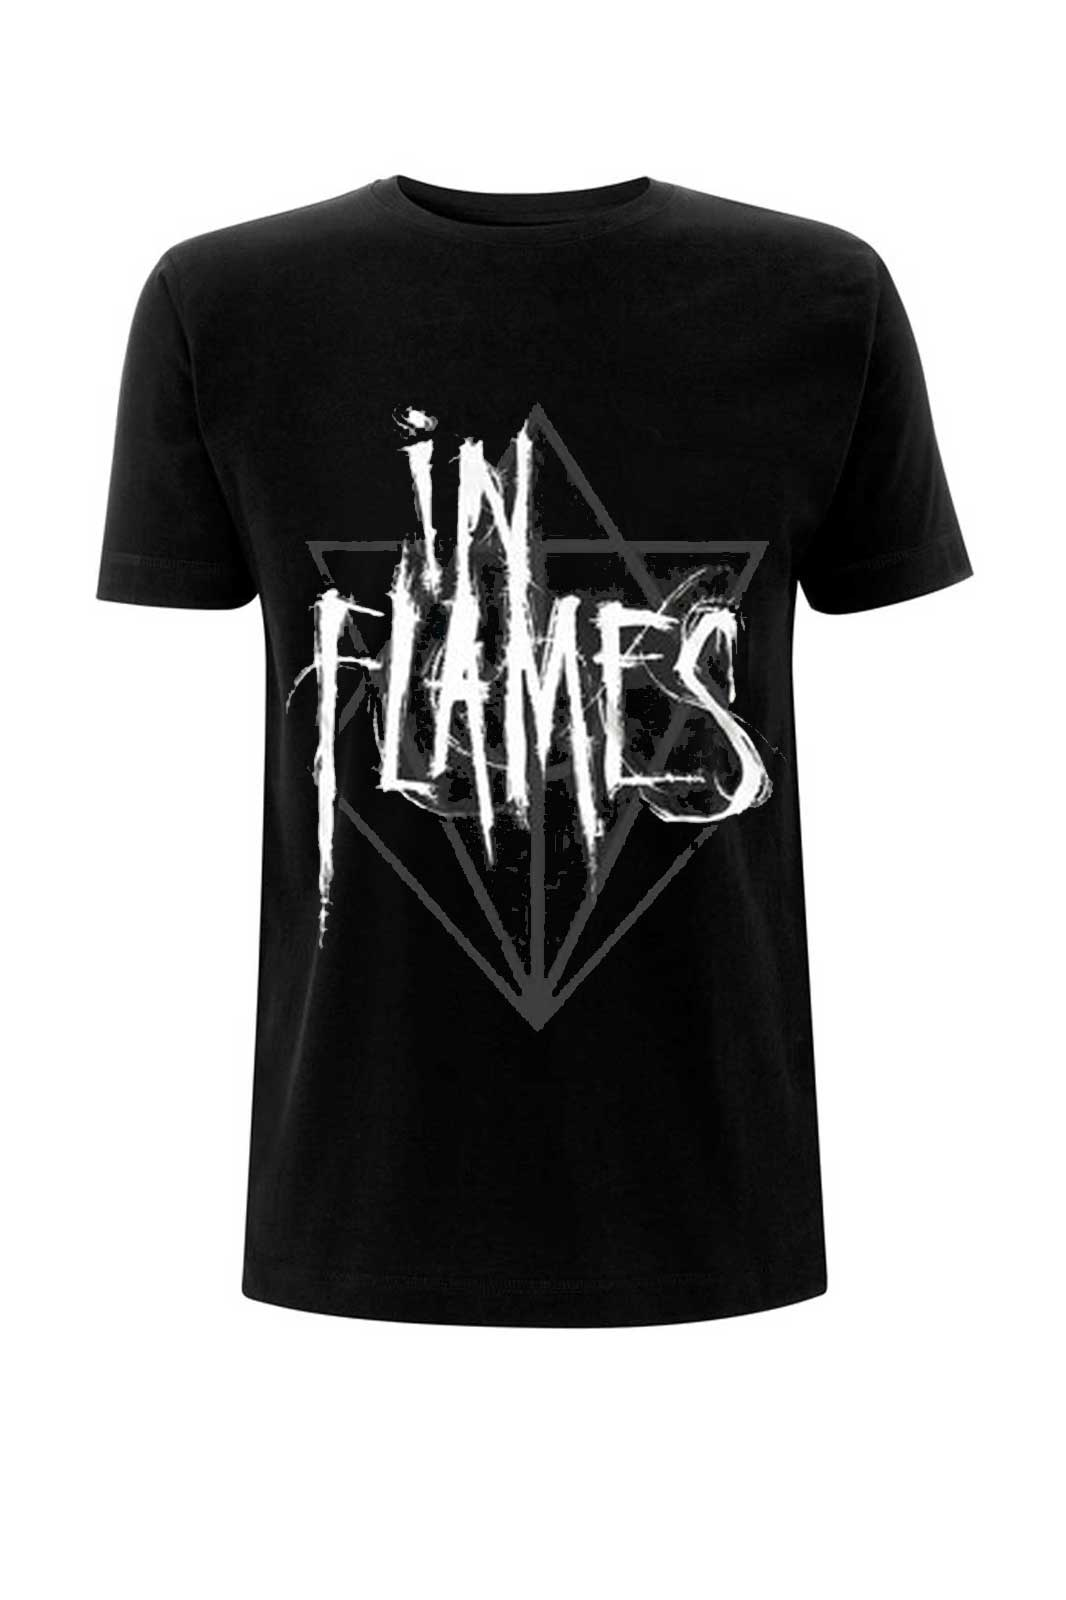 official merchandise tee in flames scratch jesterhead